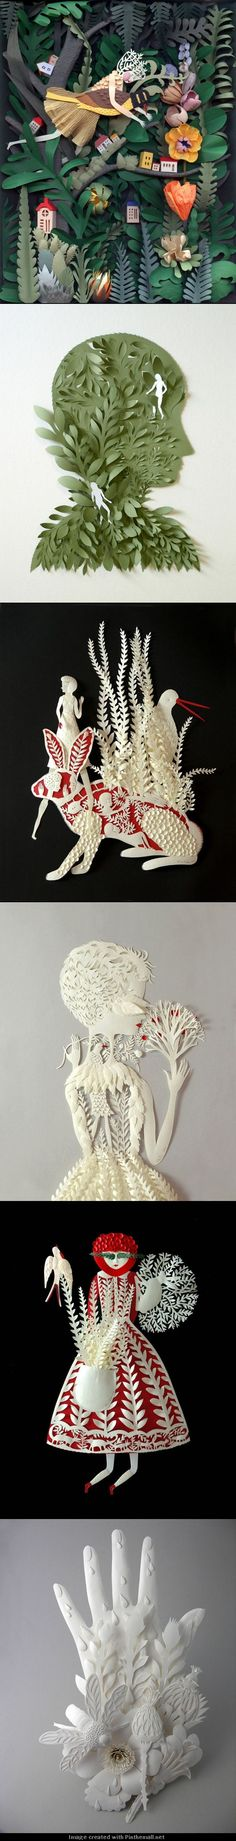 Cut Paper Sculptures and Illustrations by Elsa Mora Paper Clay Art, Paper Artwork, Paper Crafts, Cut Paper, Paper Cutting, Illustrations, Illustration Art, Sculpture Art, Paper Sculptures